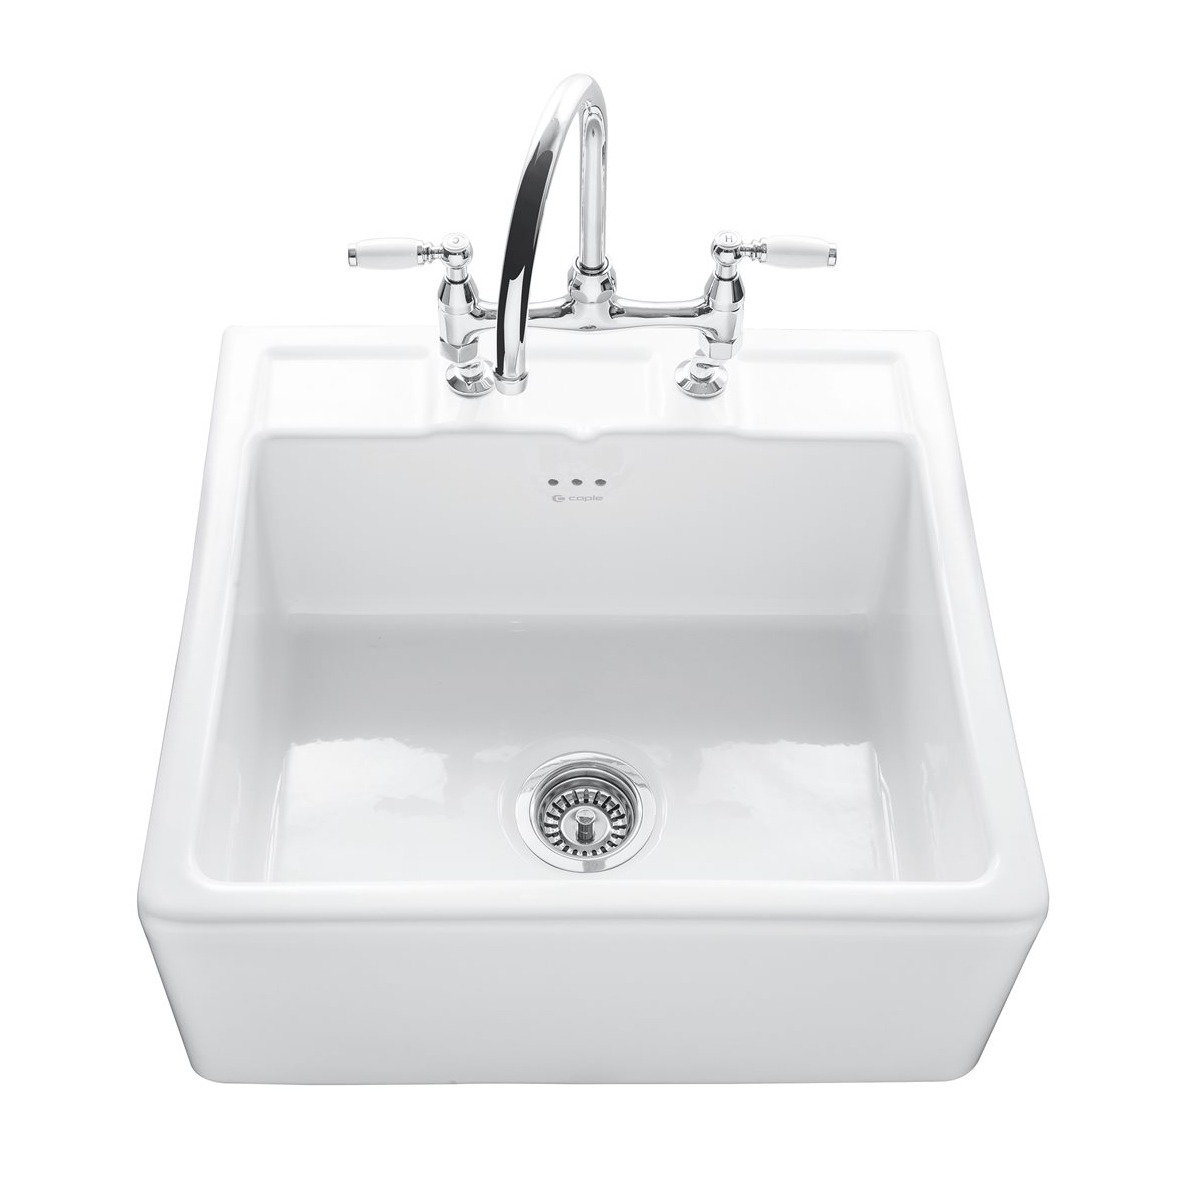 Caple Butler 600 Kitchen Sink With Tap Ledge Sinks Taps Com